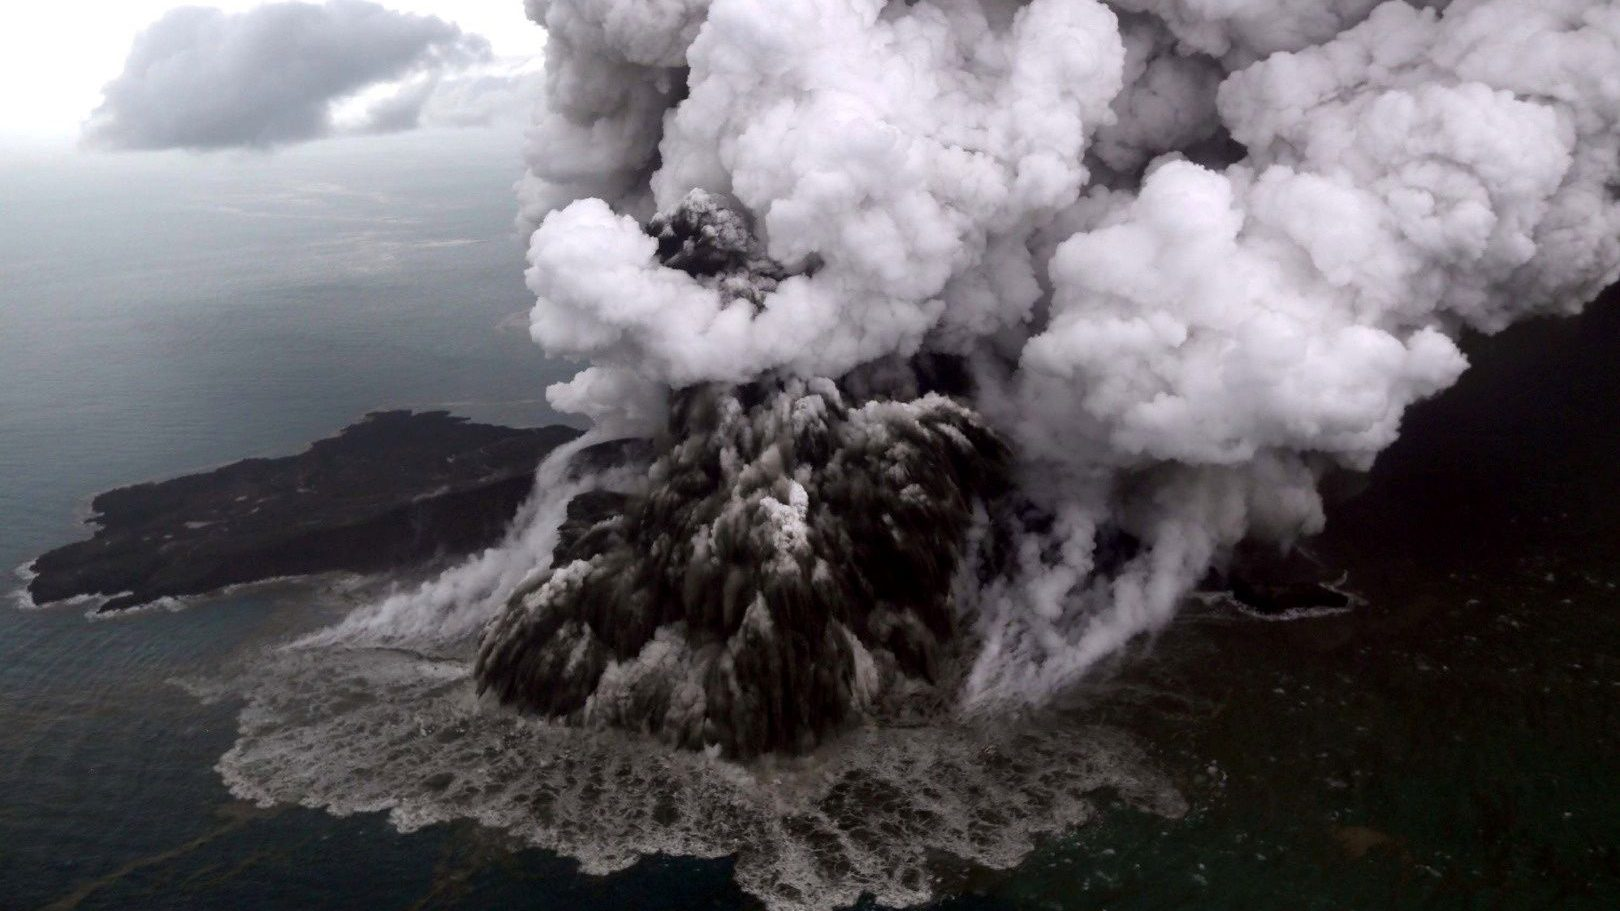 An aerial view of Anak Krakatau volcano during an eruption at Sunda strait in South Lampung, Indonesia, December 23, 2018.